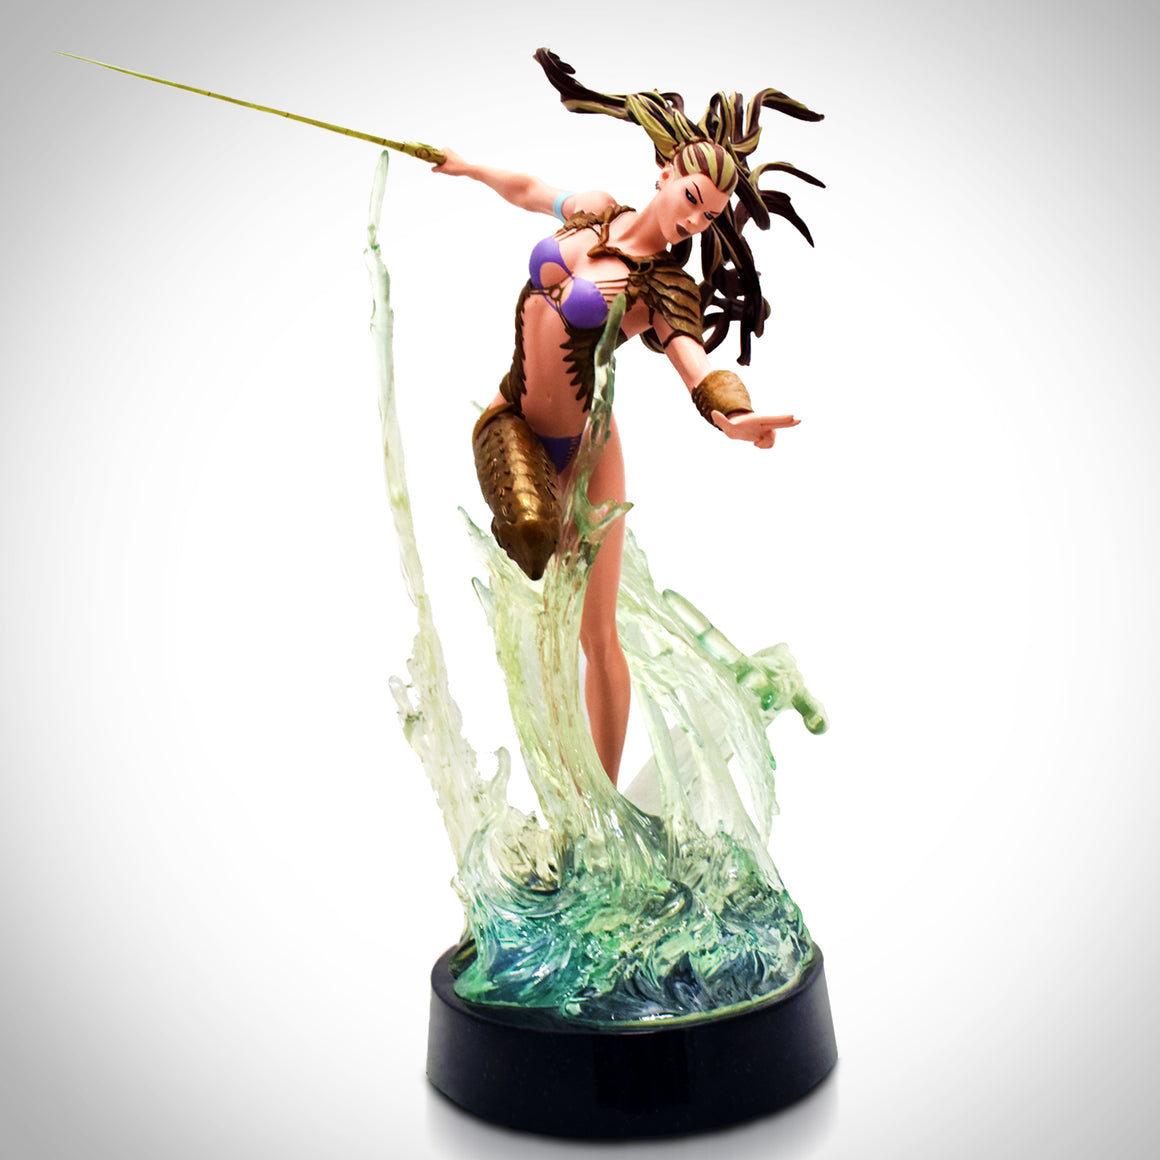 ASPEN COMICS - SOULFIRE - KIANI - FATHOM COMIC ART Limited Edition Statue